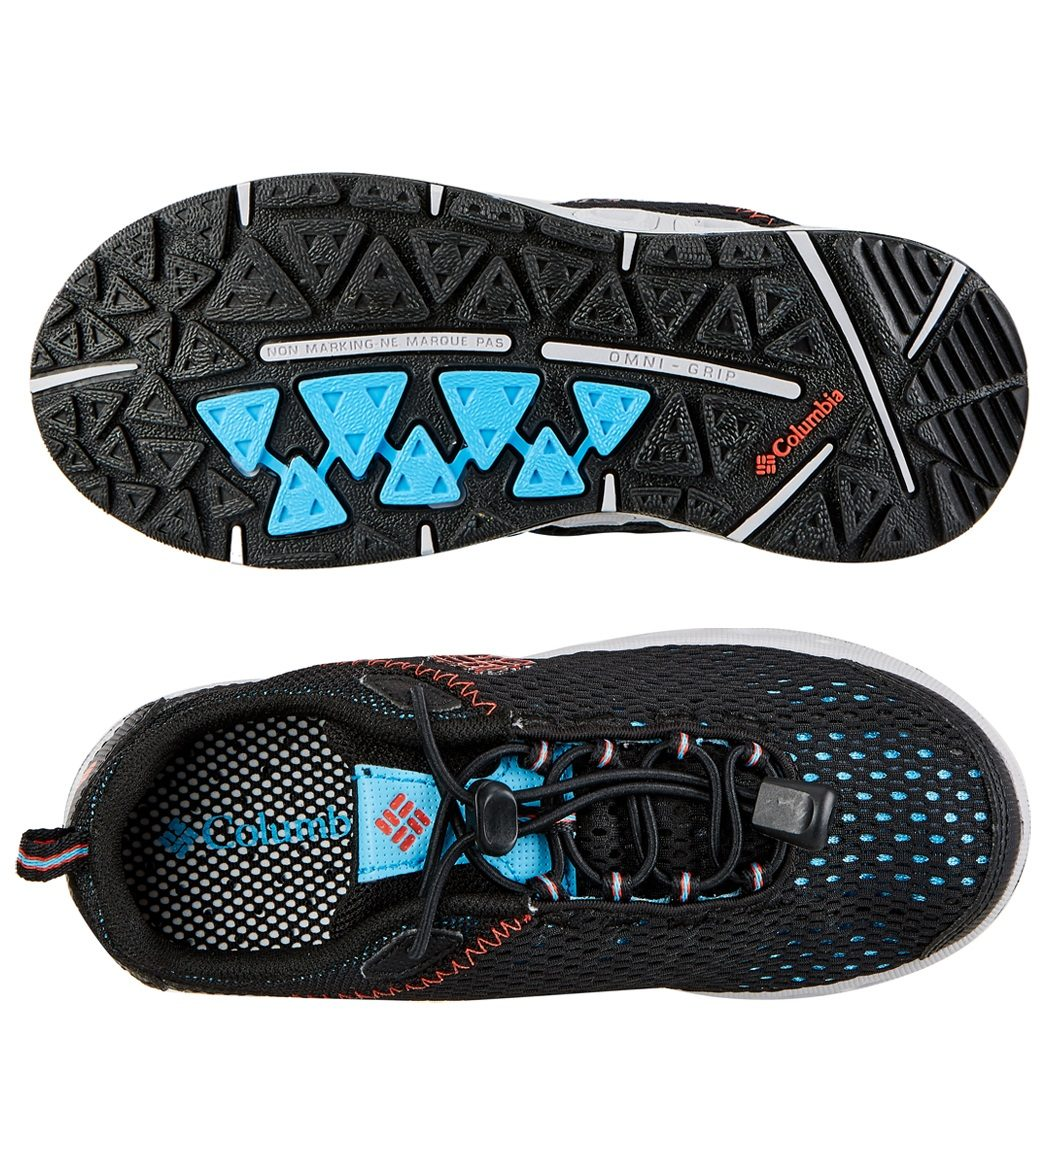 c572a81f529 Columbia Kid s Drainmaker III Water Shoes at SwimOutlet.com - Free ...